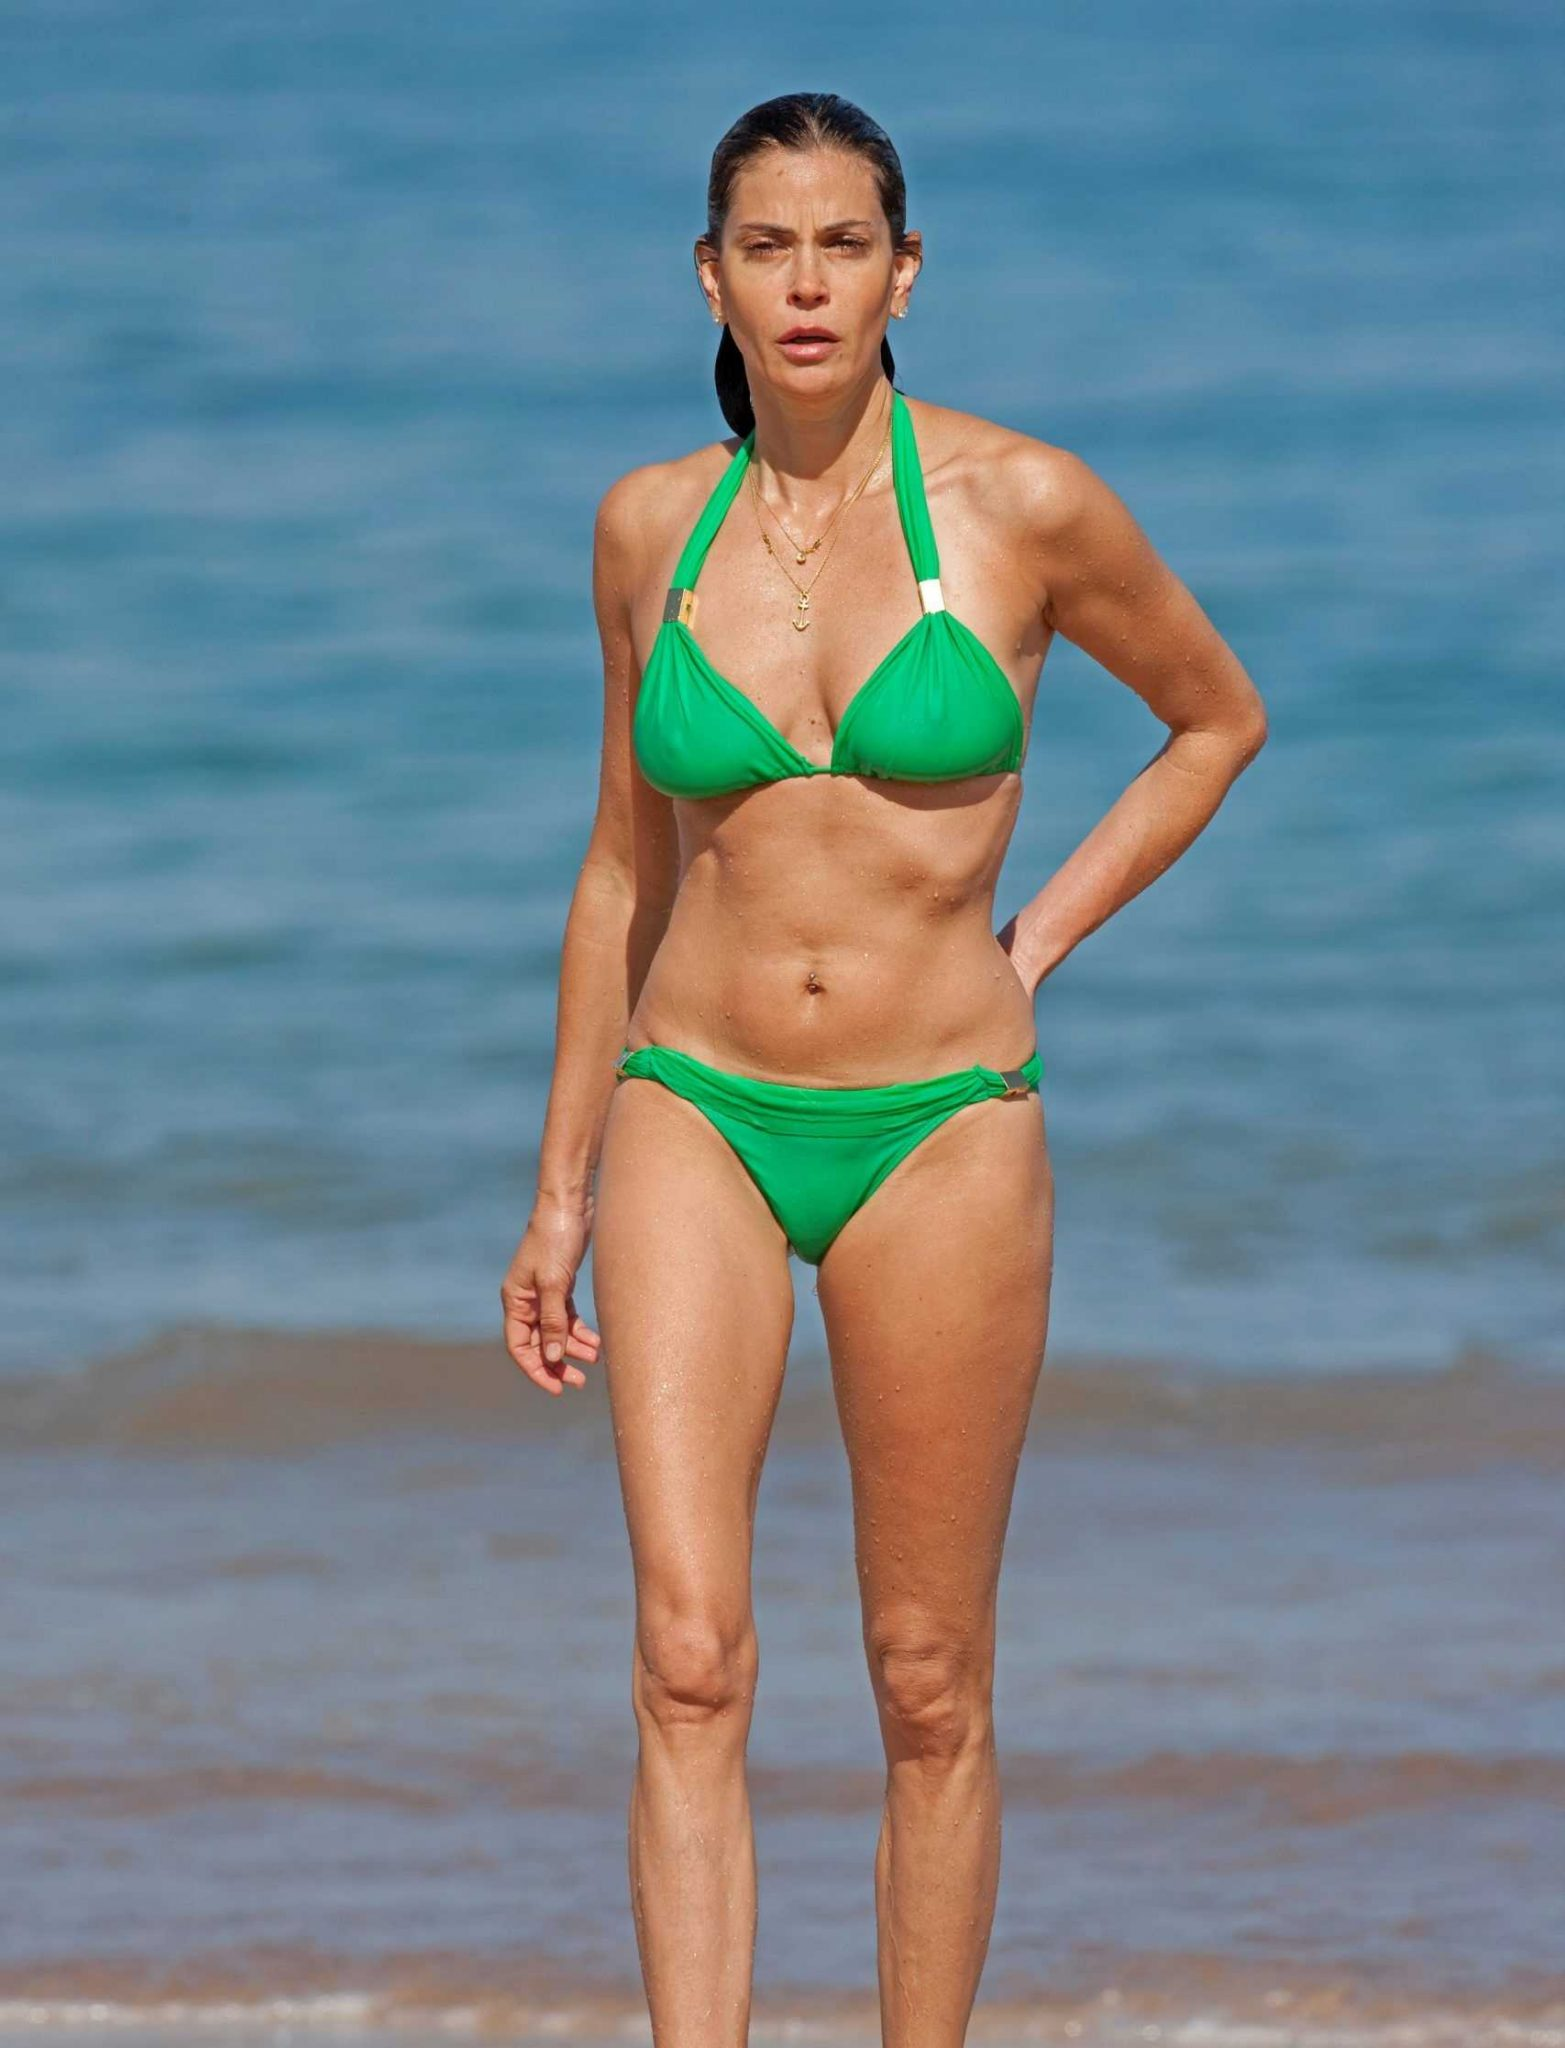 65+ Hot Pictures Of Teri Hatcher That You Can't Miss